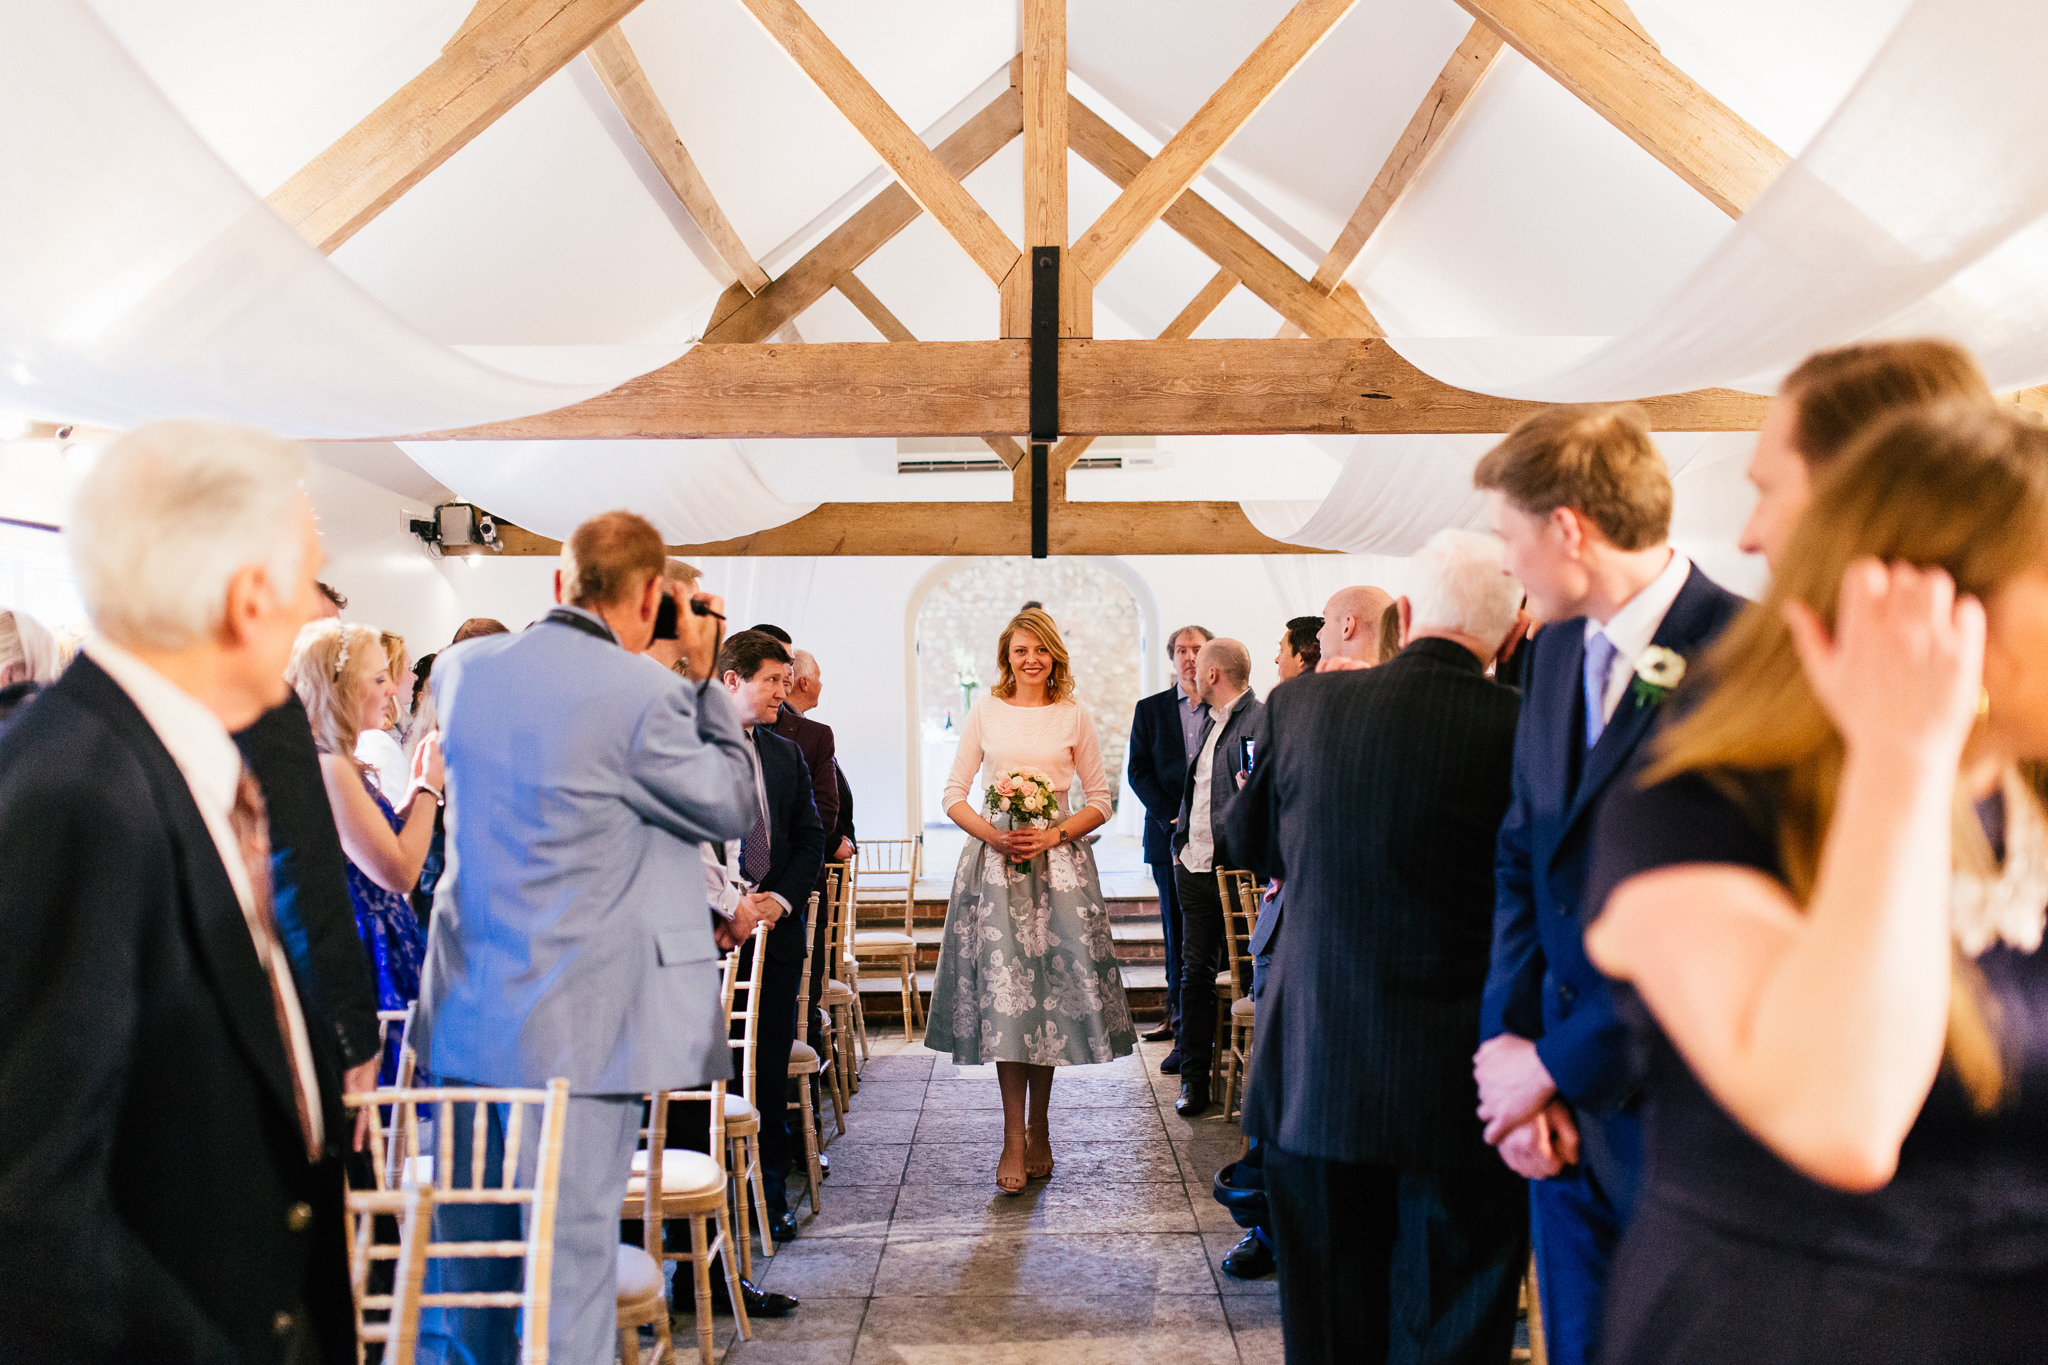 Farbridge Barn Wedding Creative Alternative Photo Chichester Joanna Nicole Photography (25 of 133).jpg